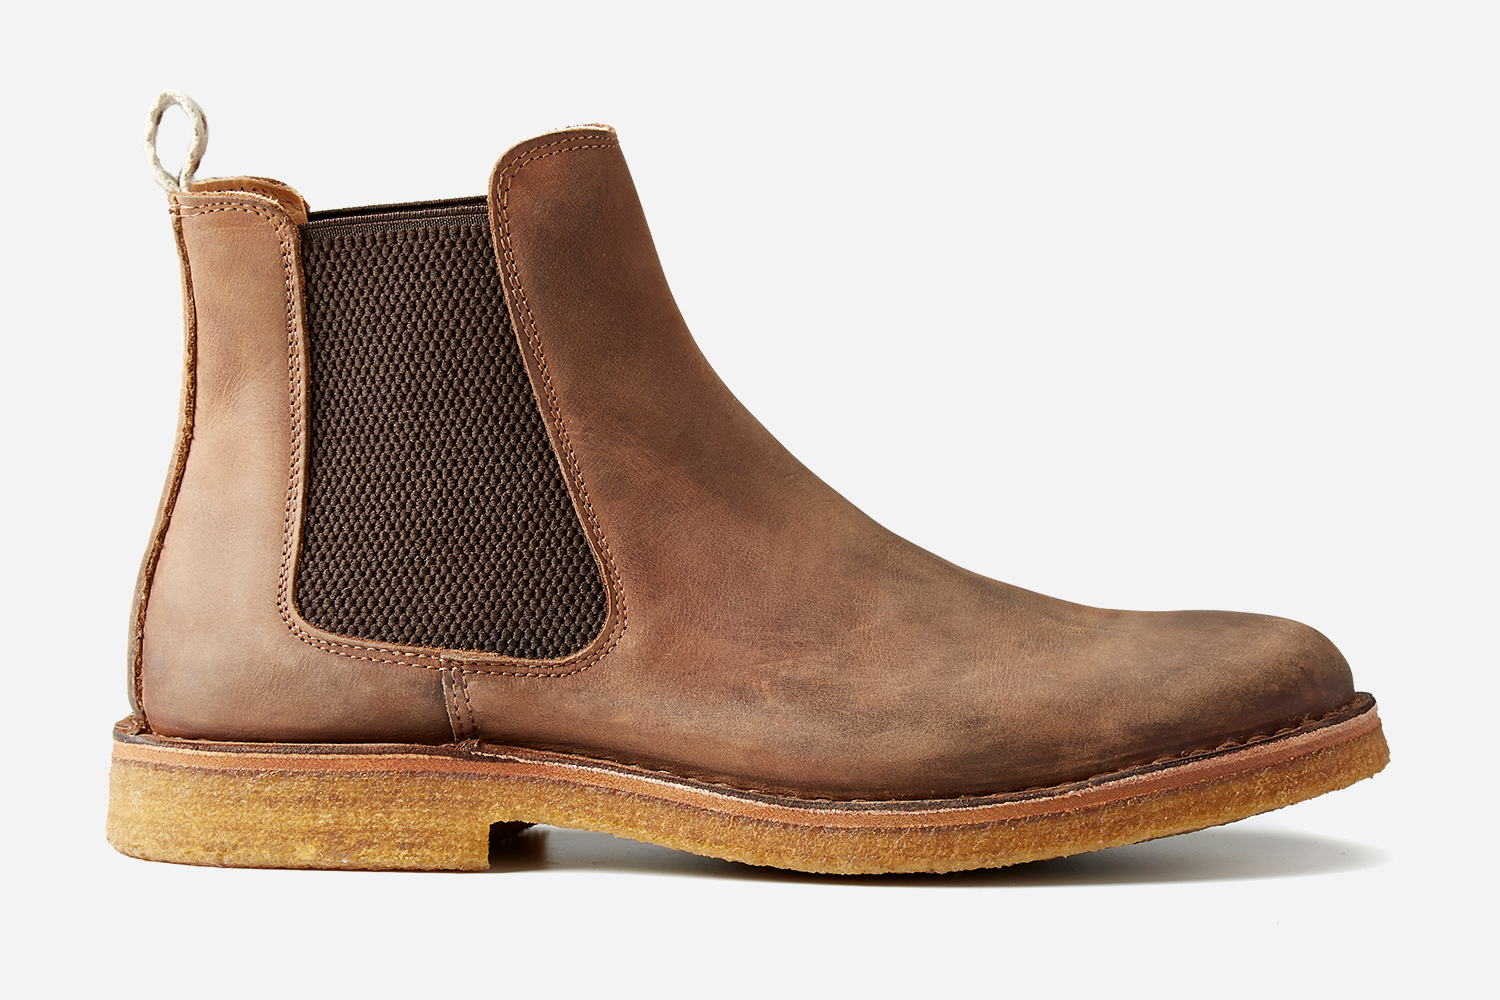 Huckberry Exclusive Bitflex Chelsea Boots From Astorflex